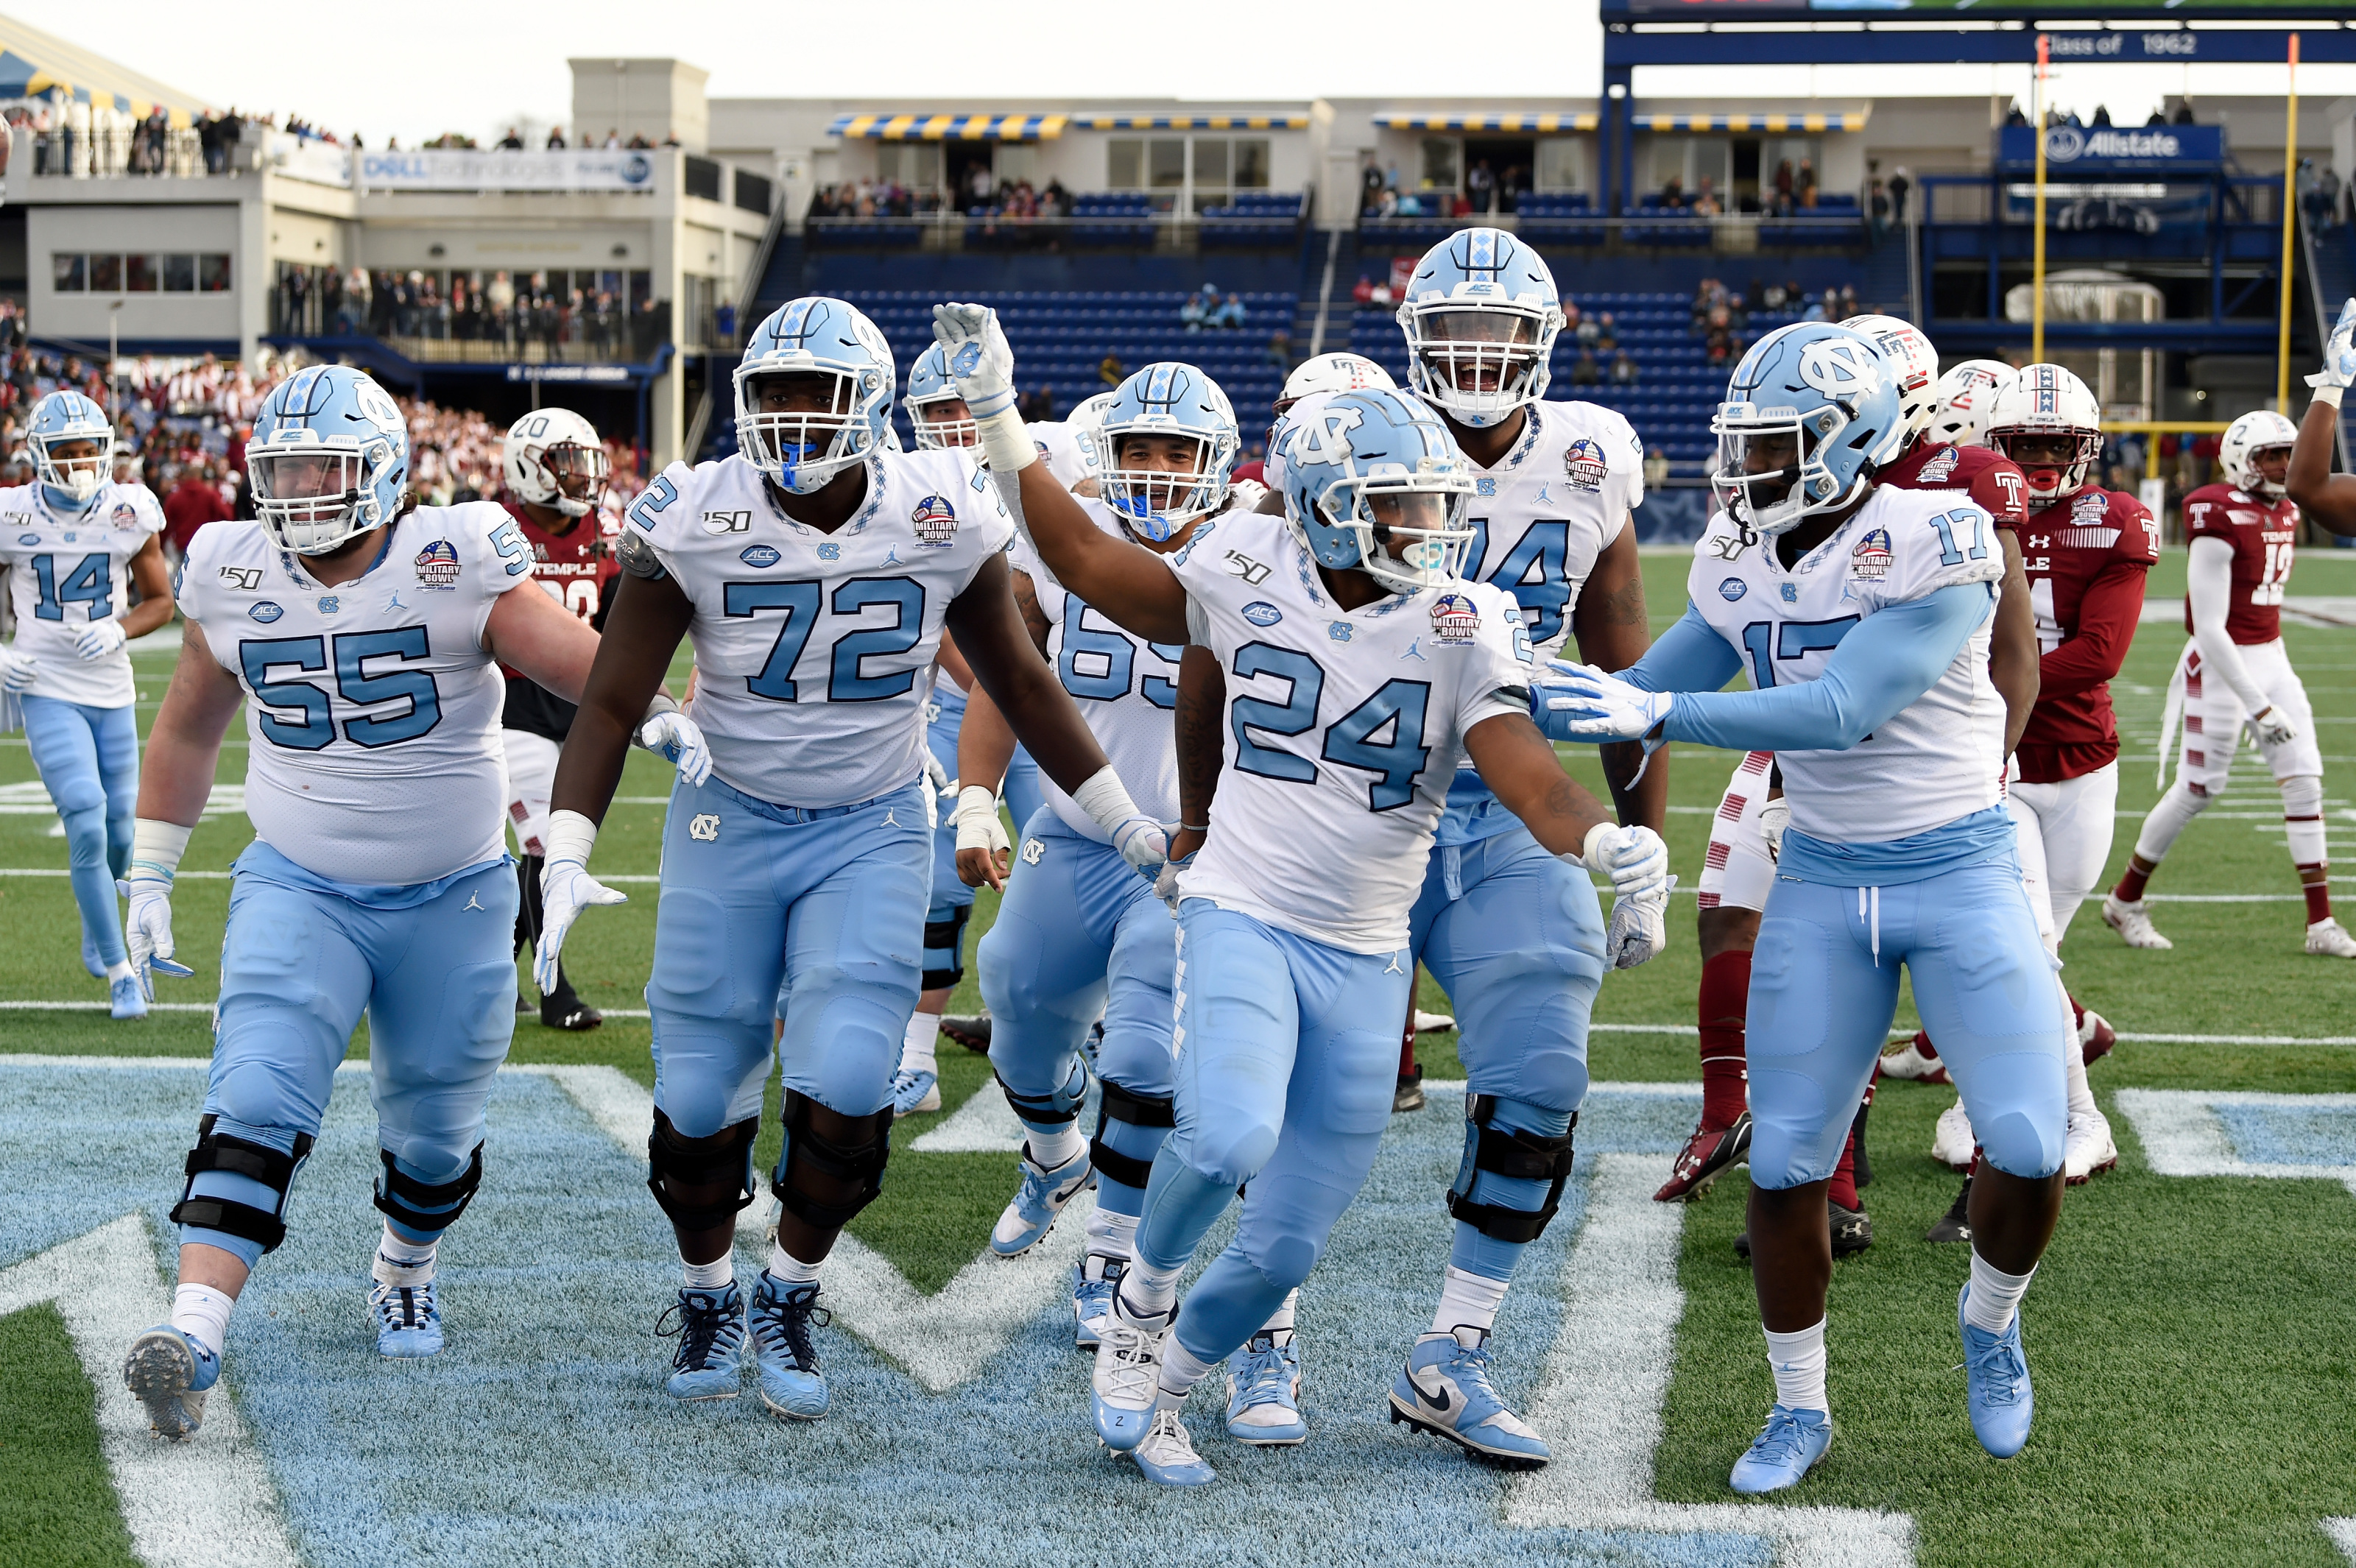 North Carolina Football Ranking 2020 Opponents By Toughness